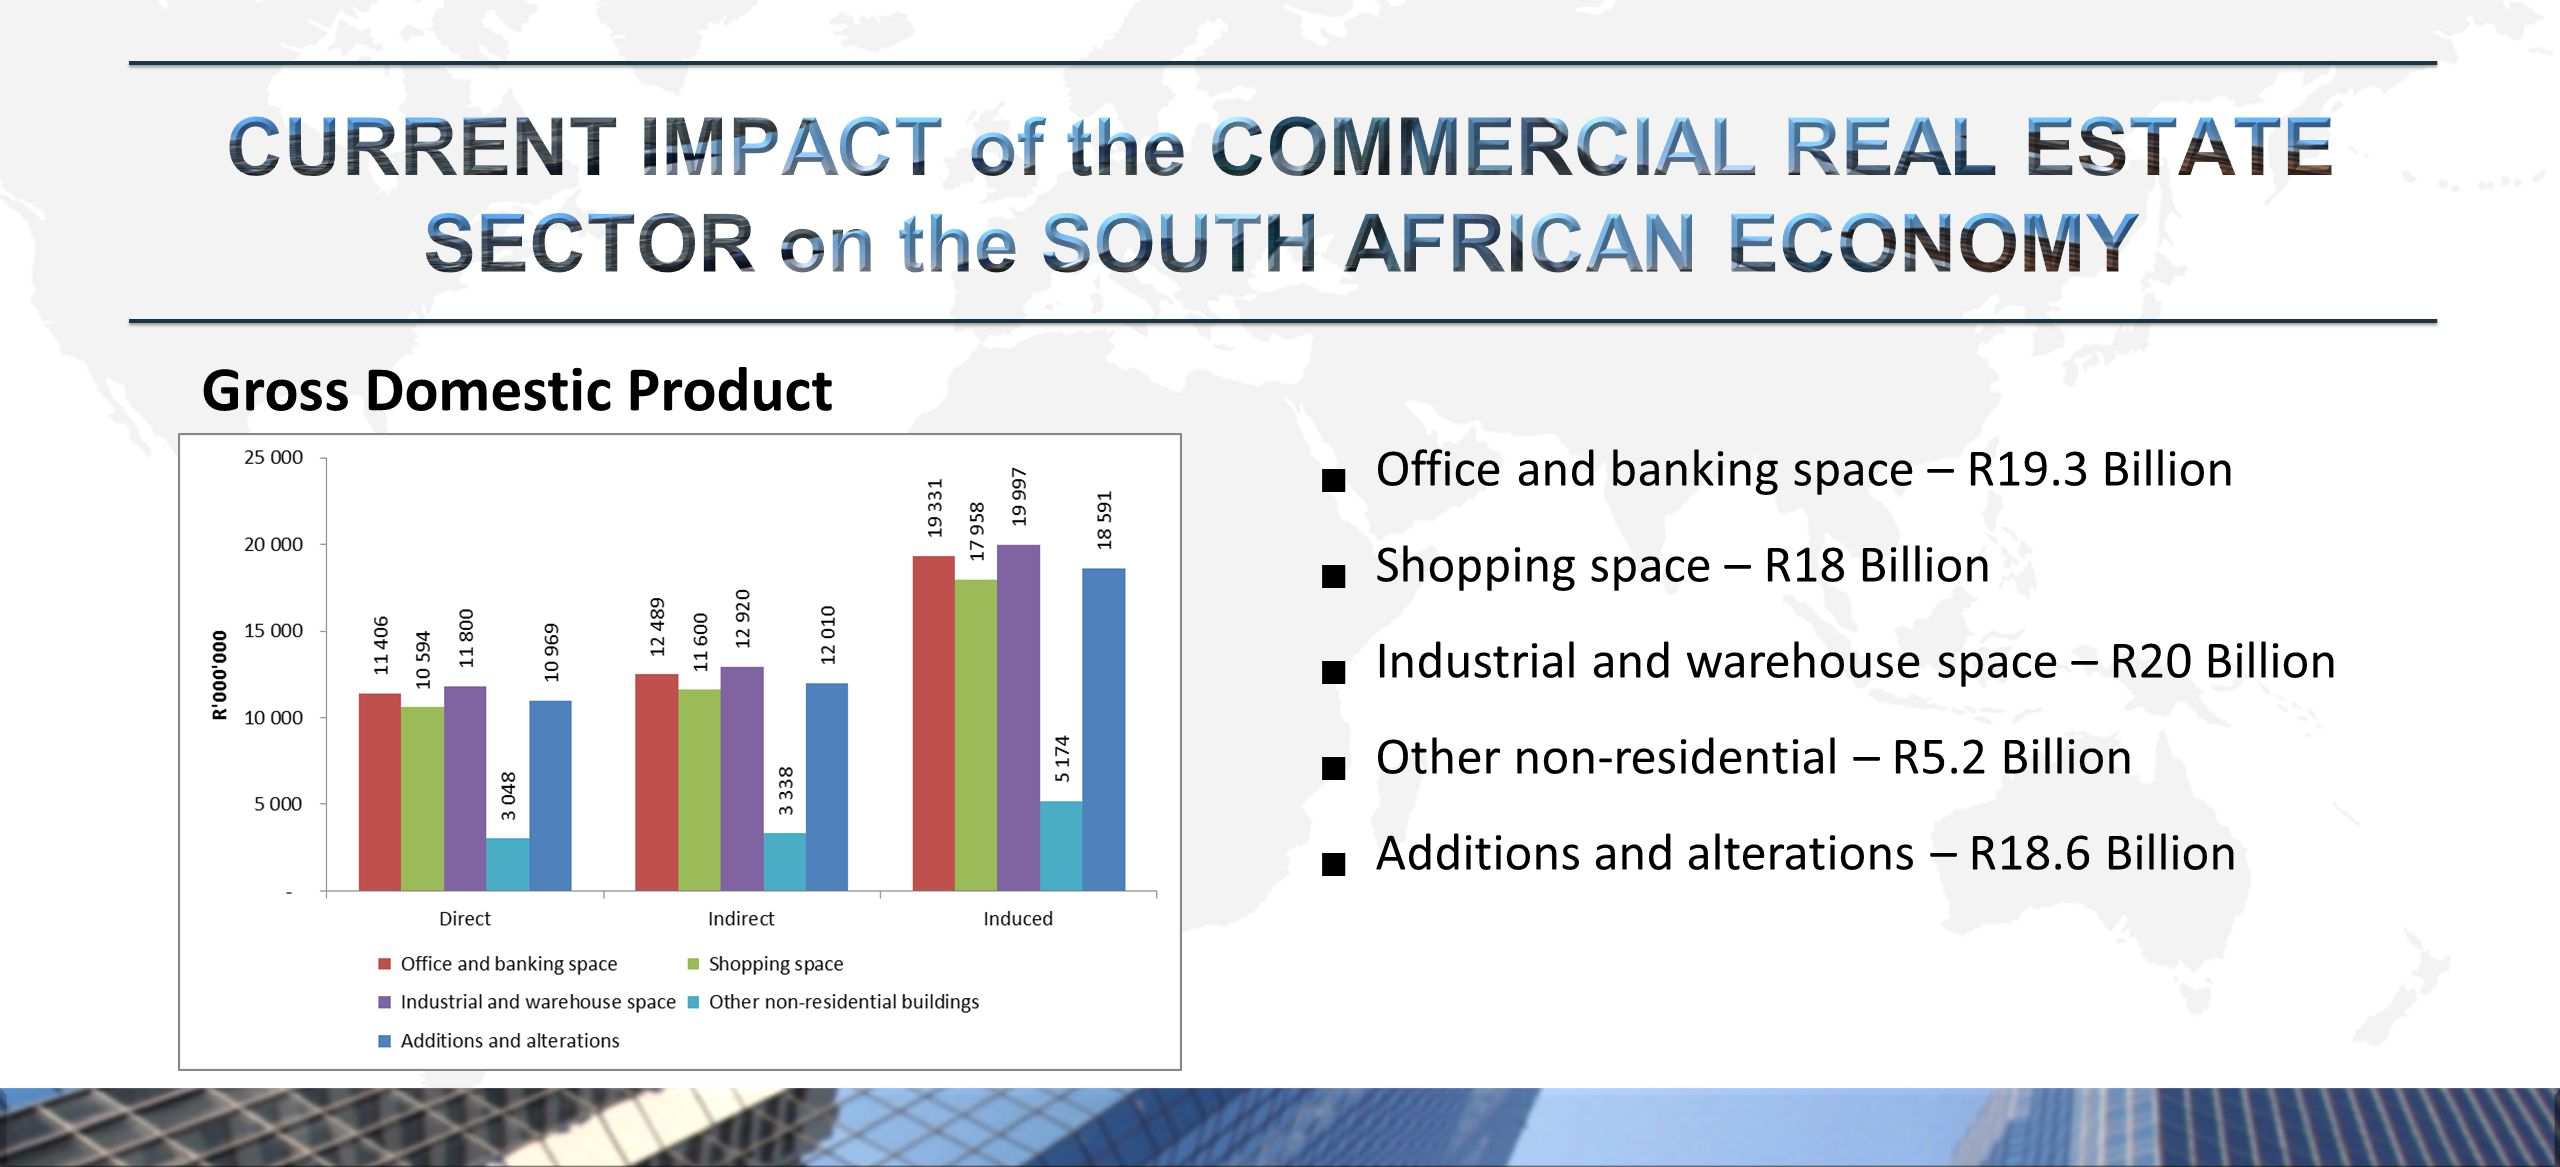 Gross Domestic Product  Office and banking space – R19.3 Billion  Shopping space – R18 Billion  Industrial and warehouse space – R20 Billion  Other non-residential – R5.2 Billion  Additions and alterations – R18.6 Billion